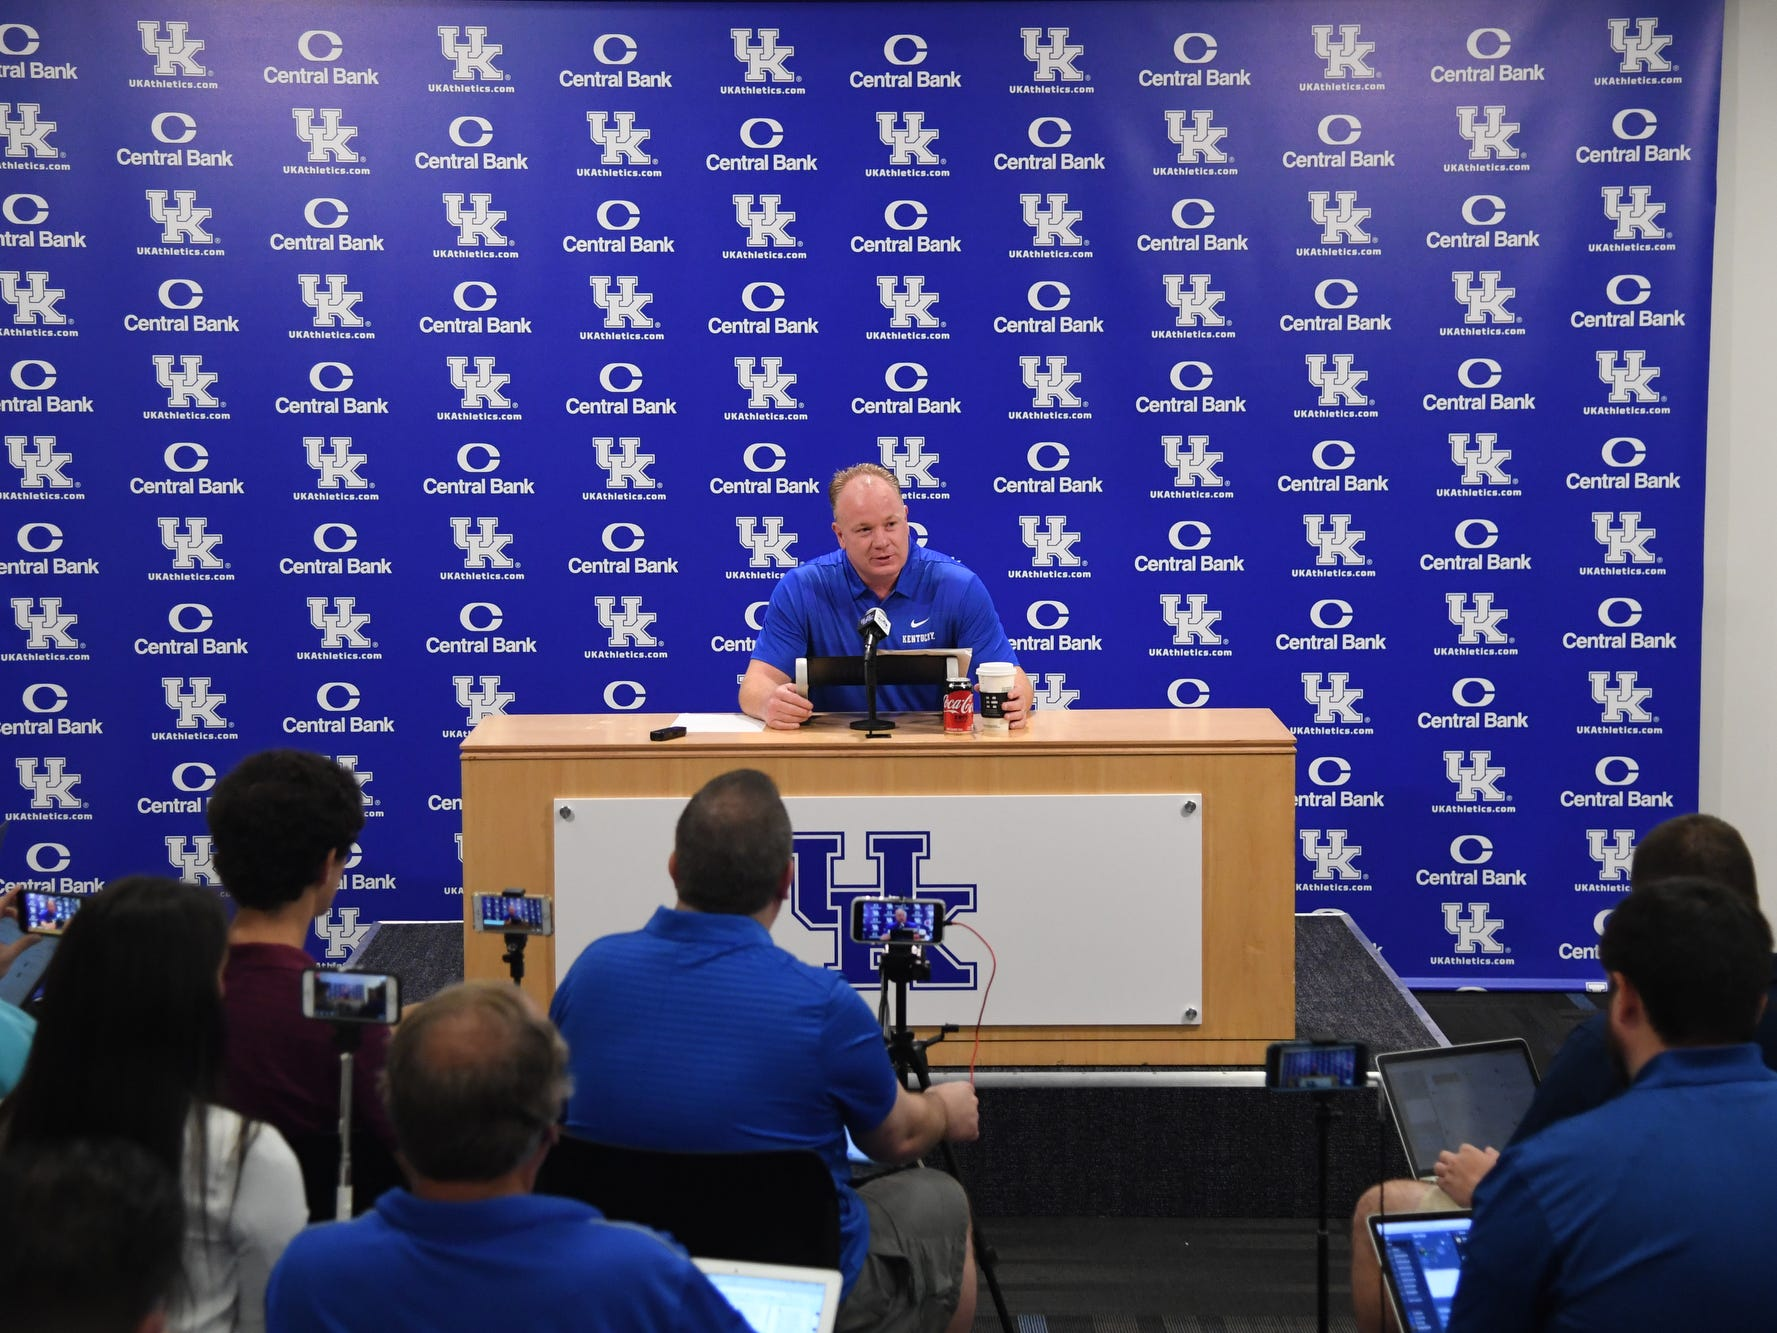 Head coach Mark Stoops holds a press conference during the UK football media day at Kroger Filed in Lexington, Kentucky on Friday, August 3, 2018.